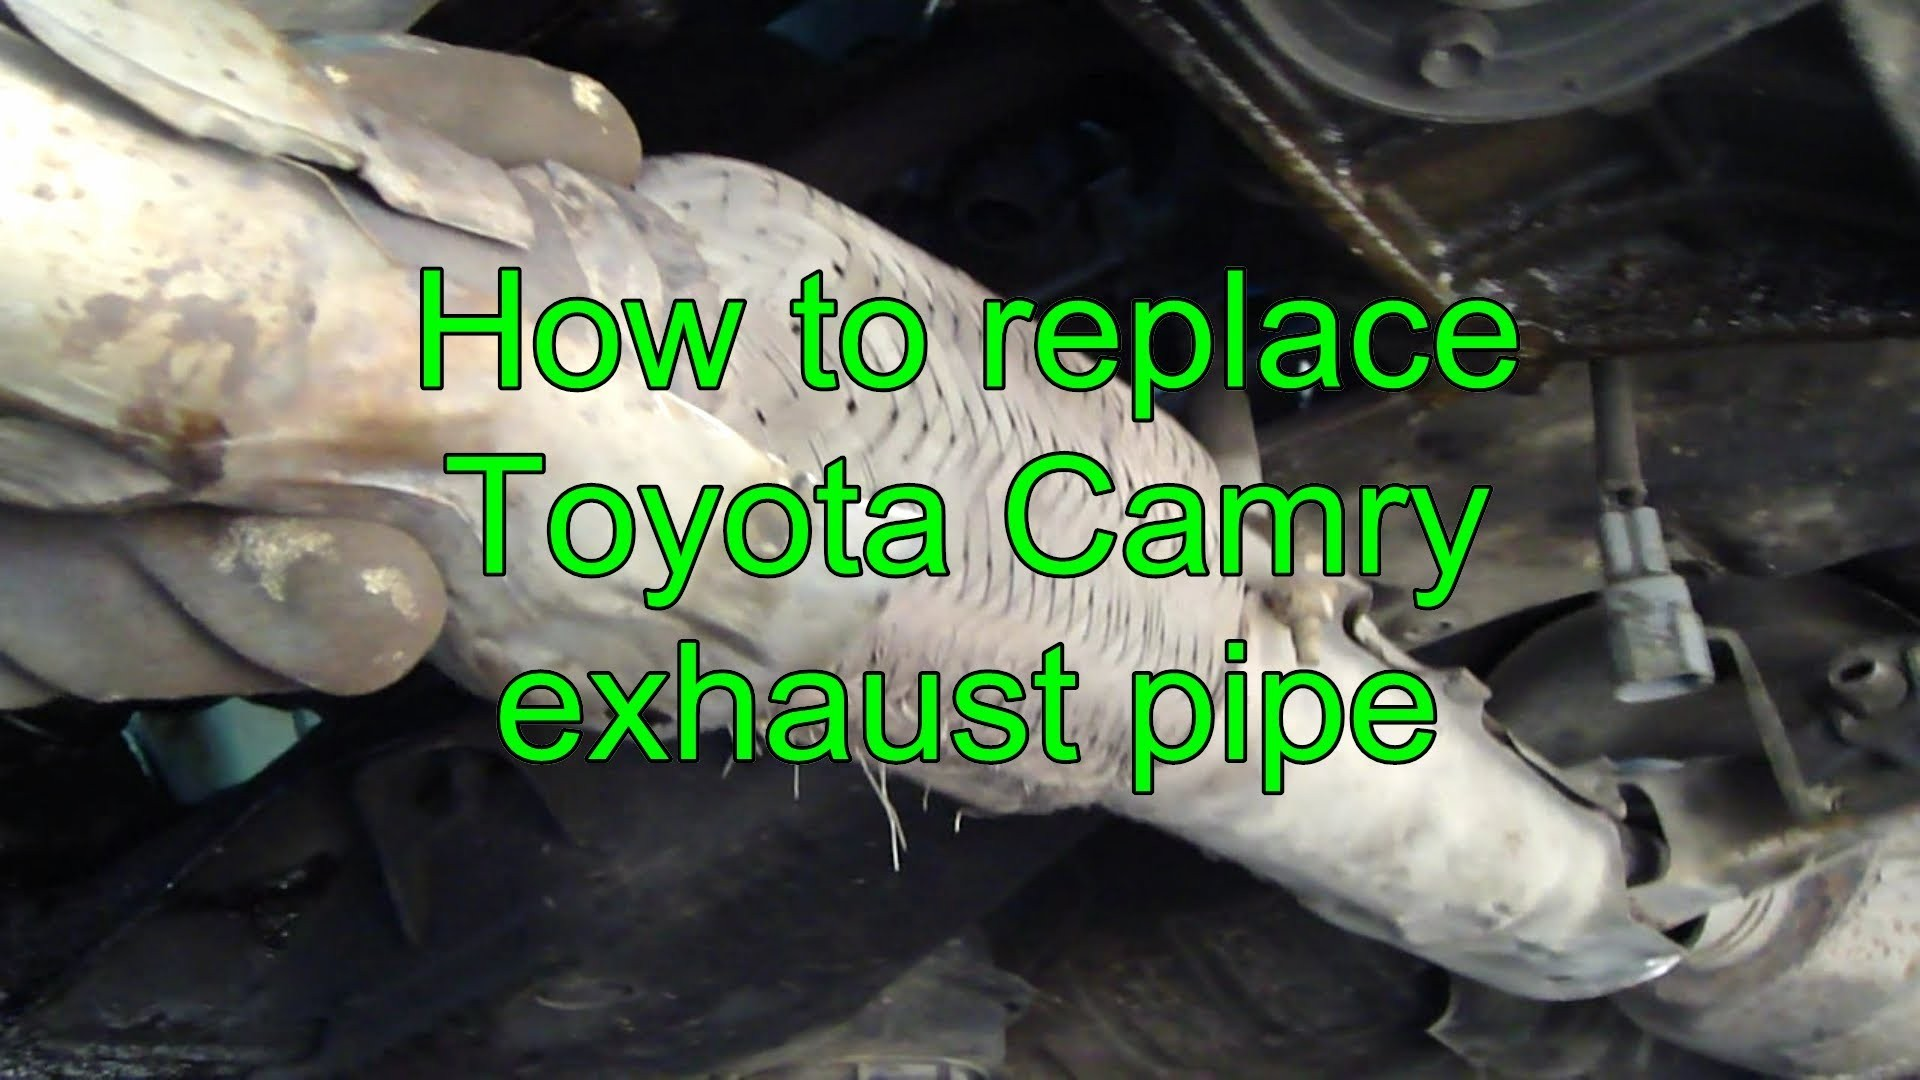 99 toyota Camry Engine Diagram How to Replace toyota Camry Exhaust Pipe Years 1992 to 2002 Of 99 toyota Camry Engine Diagram